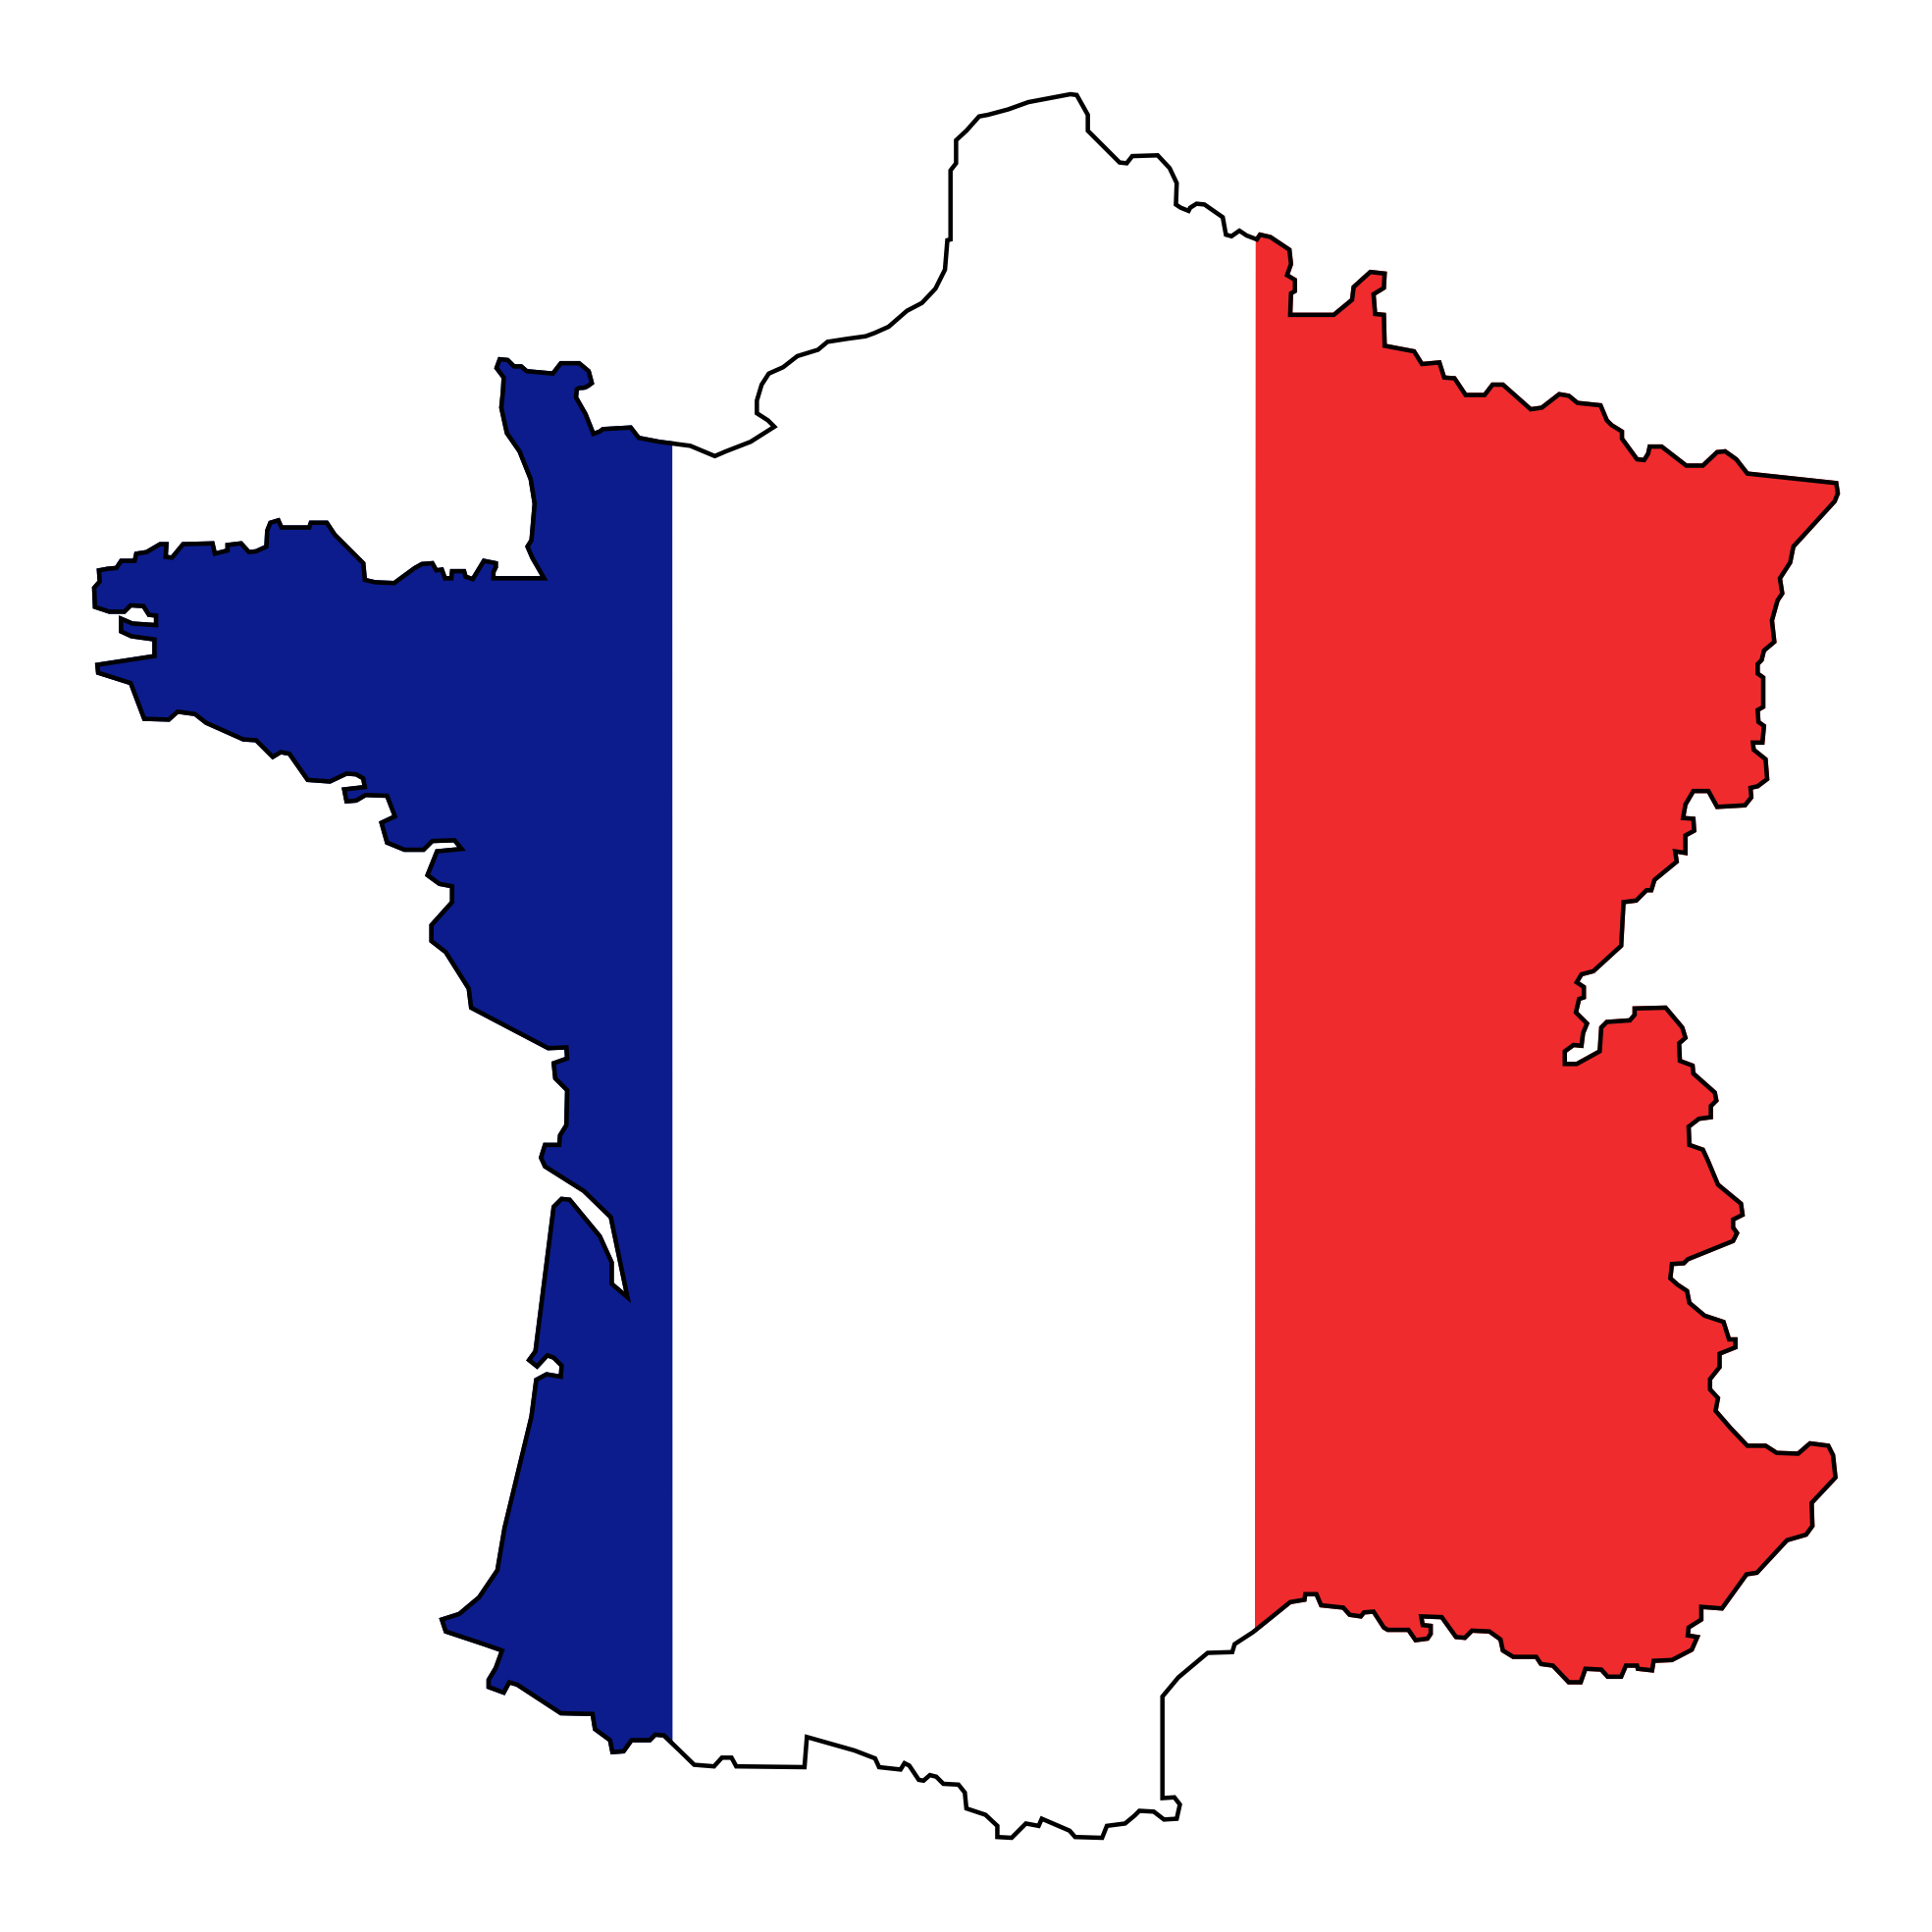 France Clipart - Cliparts.co